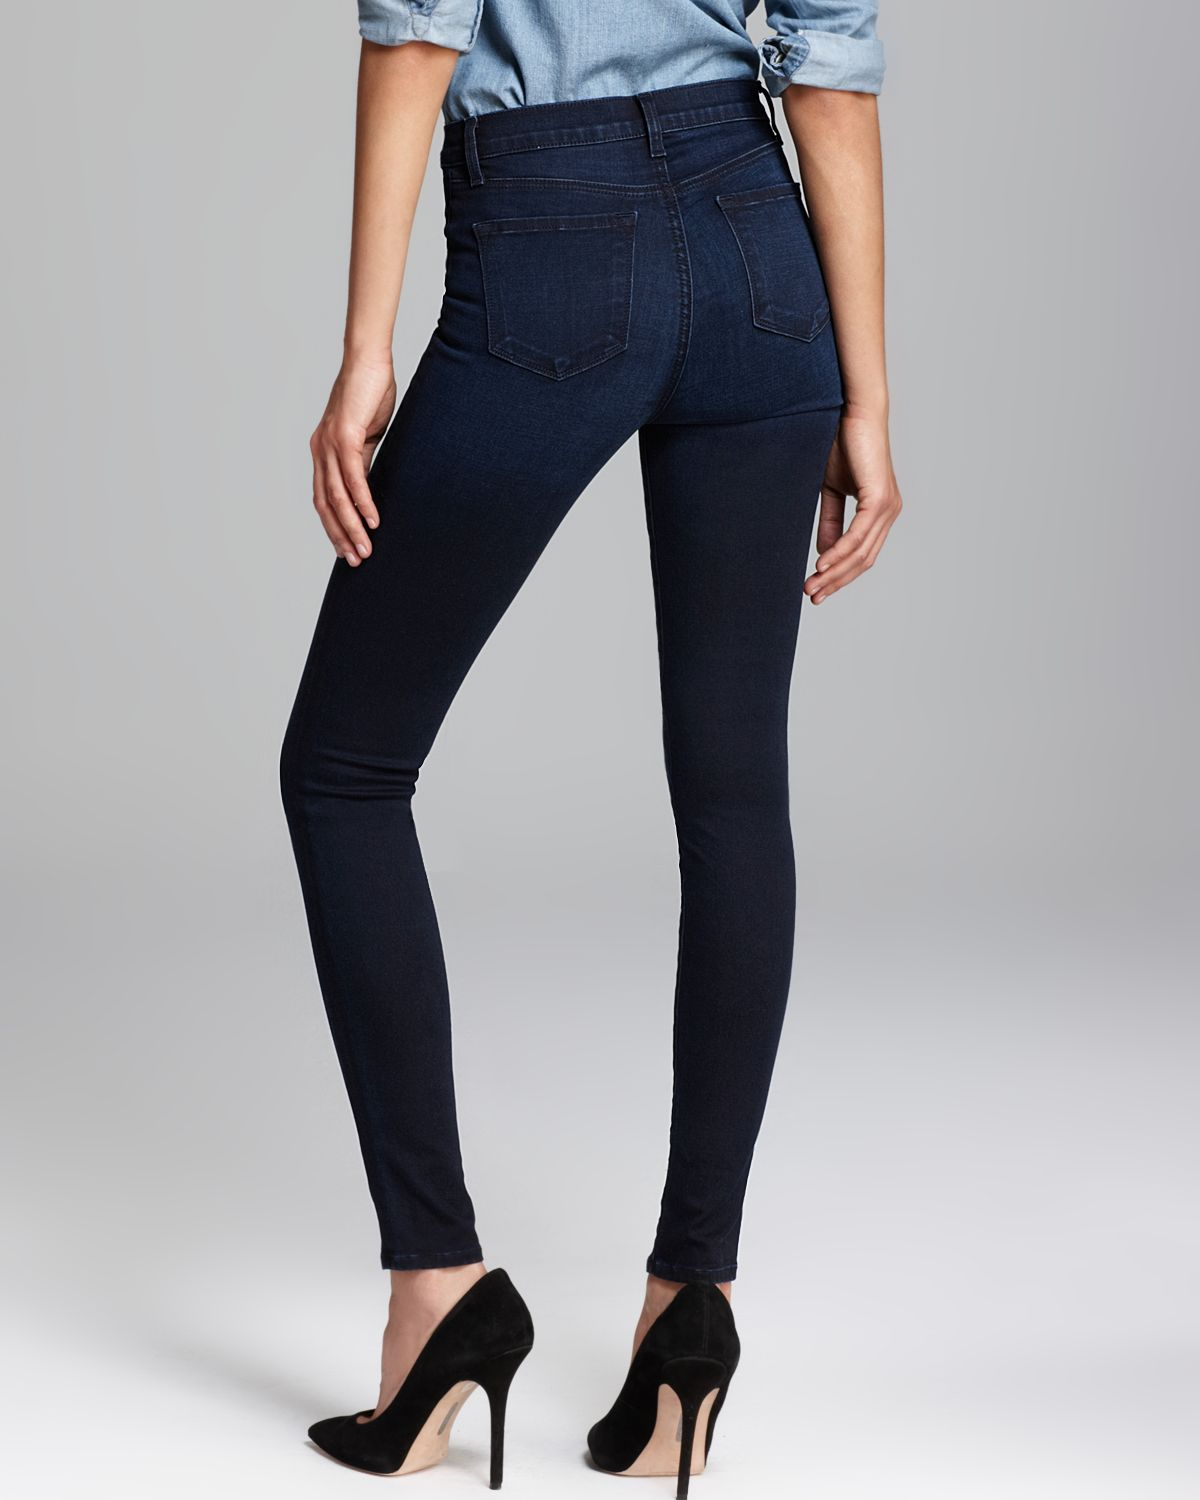 j brand jeans luxe sateen high rise maria skinny in atmosphere in blue lyst. Black Bedroom Furniture Sets. Home Design Ideas